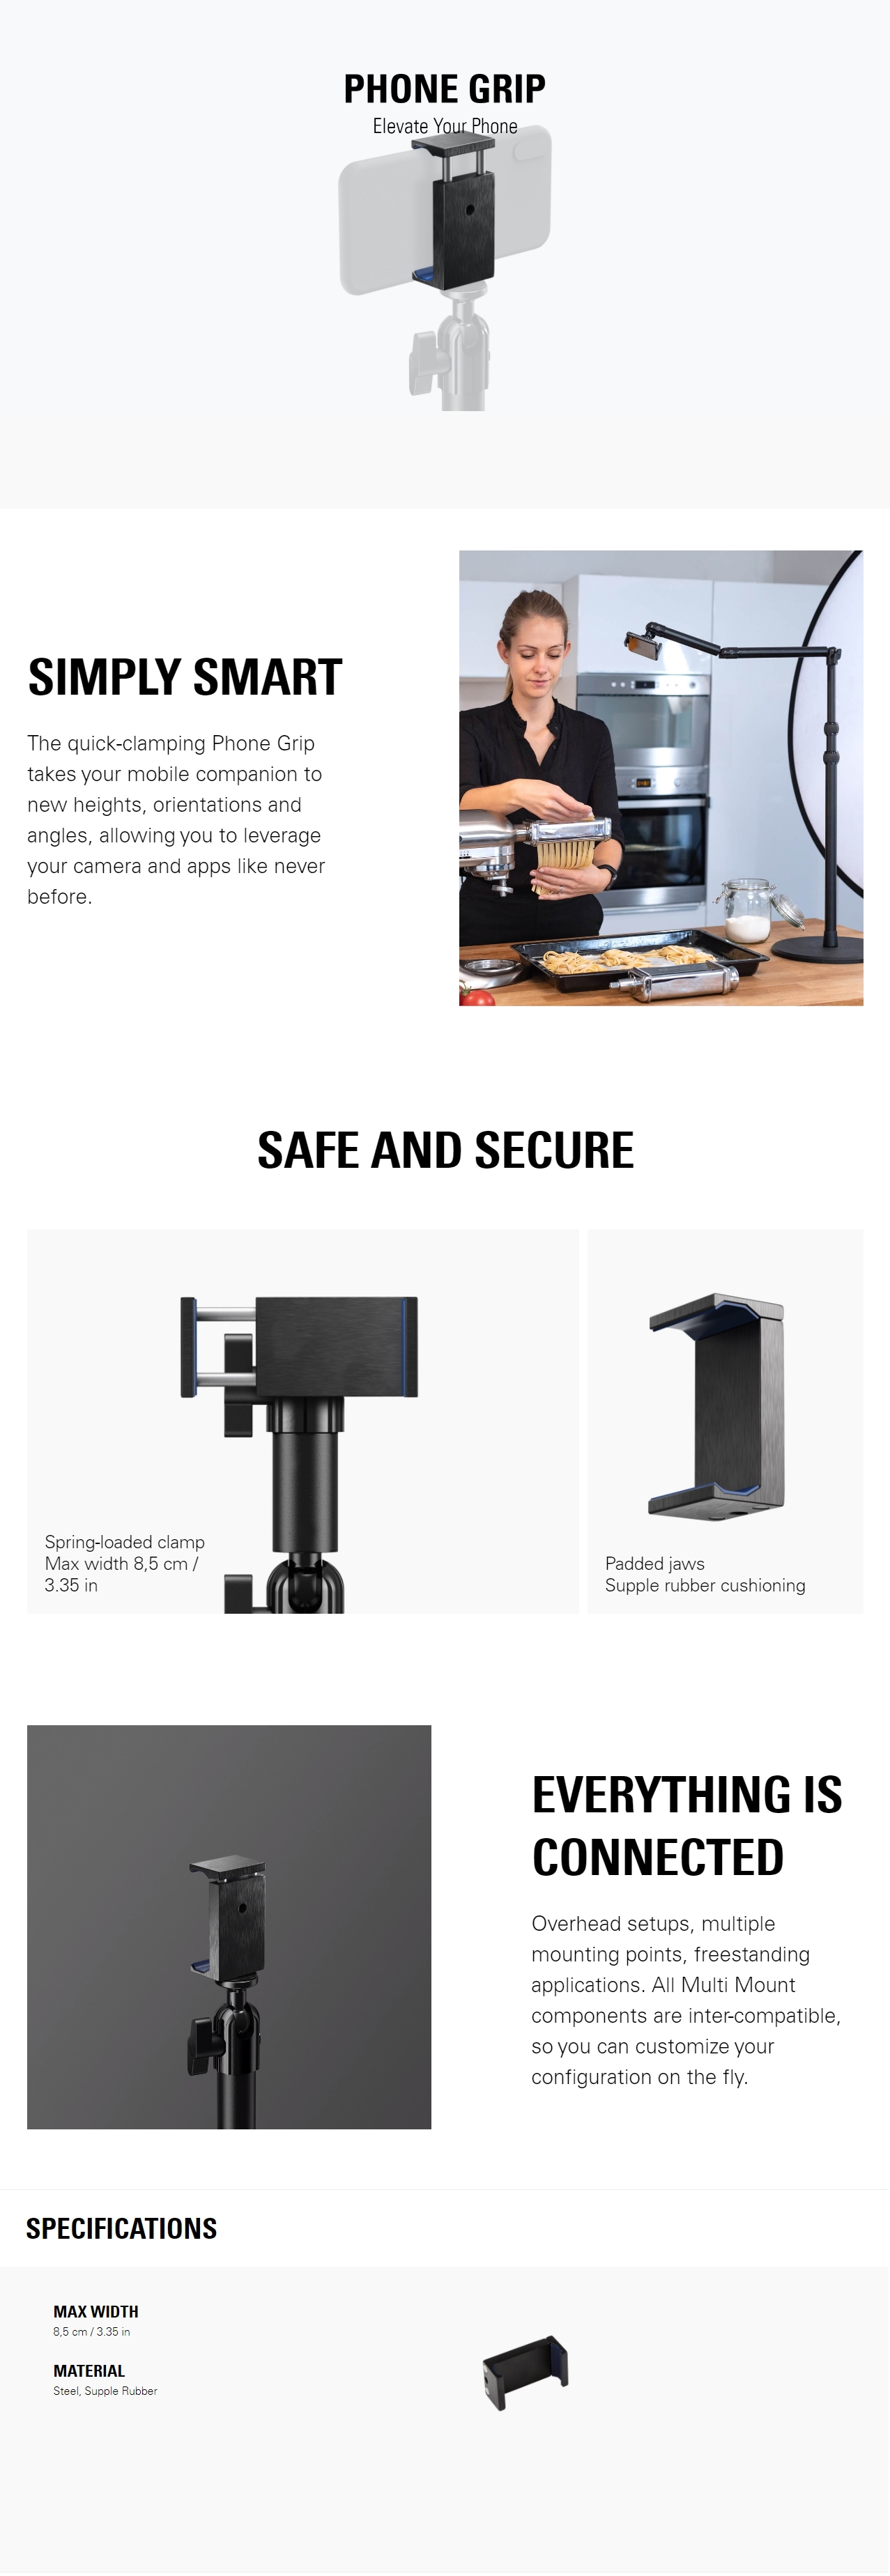 A large marketing image providing additional information about the product Elgato Multi Mount System - Phone Grip - Additional alt info not provided